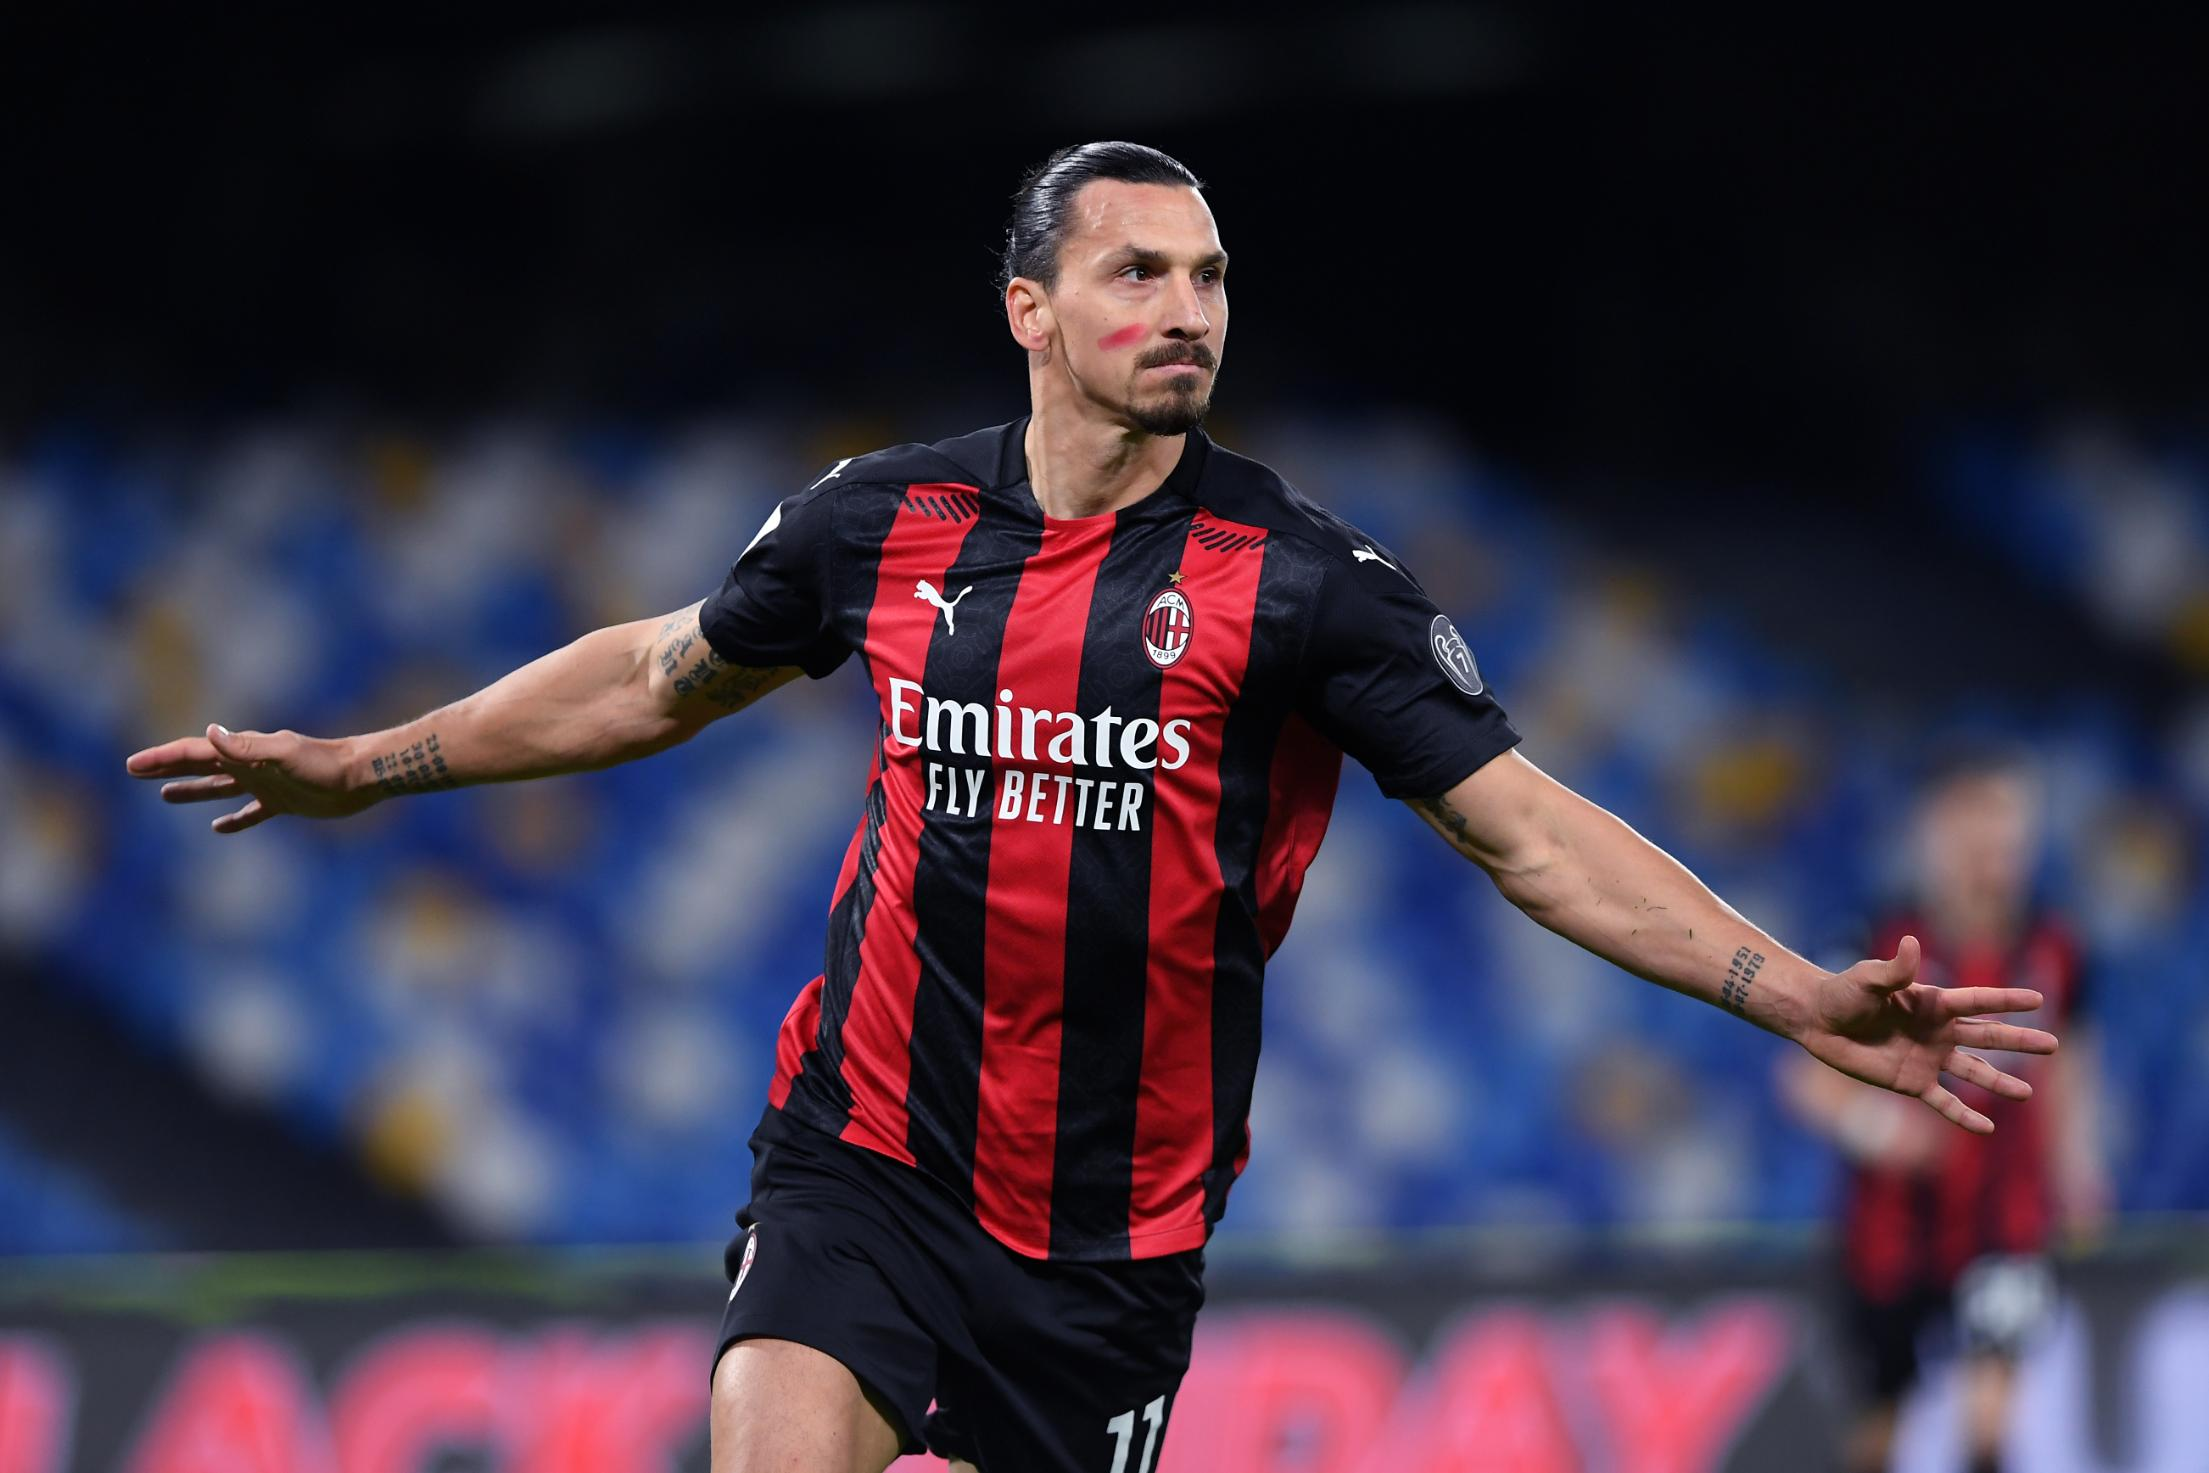 Zlatan Ibrahimovic scores twice before getting injured as AC Milan extends unbeaten run